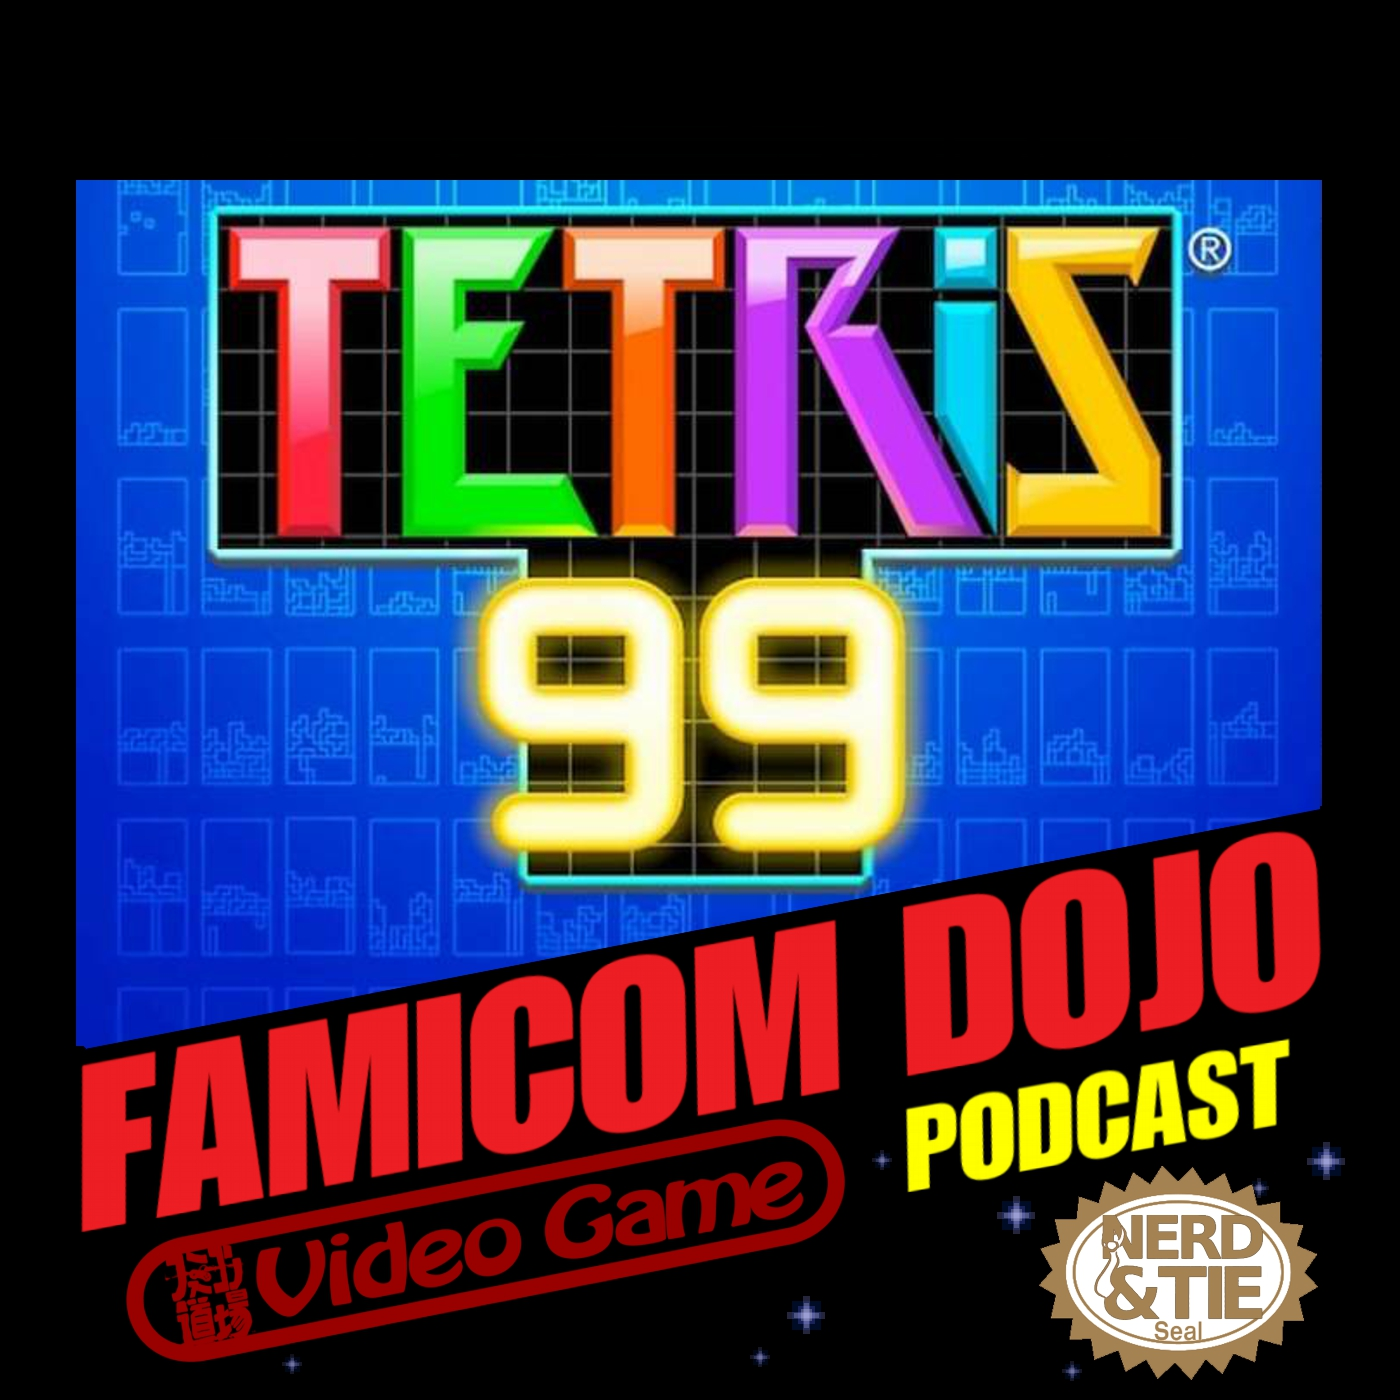 Famicom Dojo Podcast 156: My Body Isn't Reggie